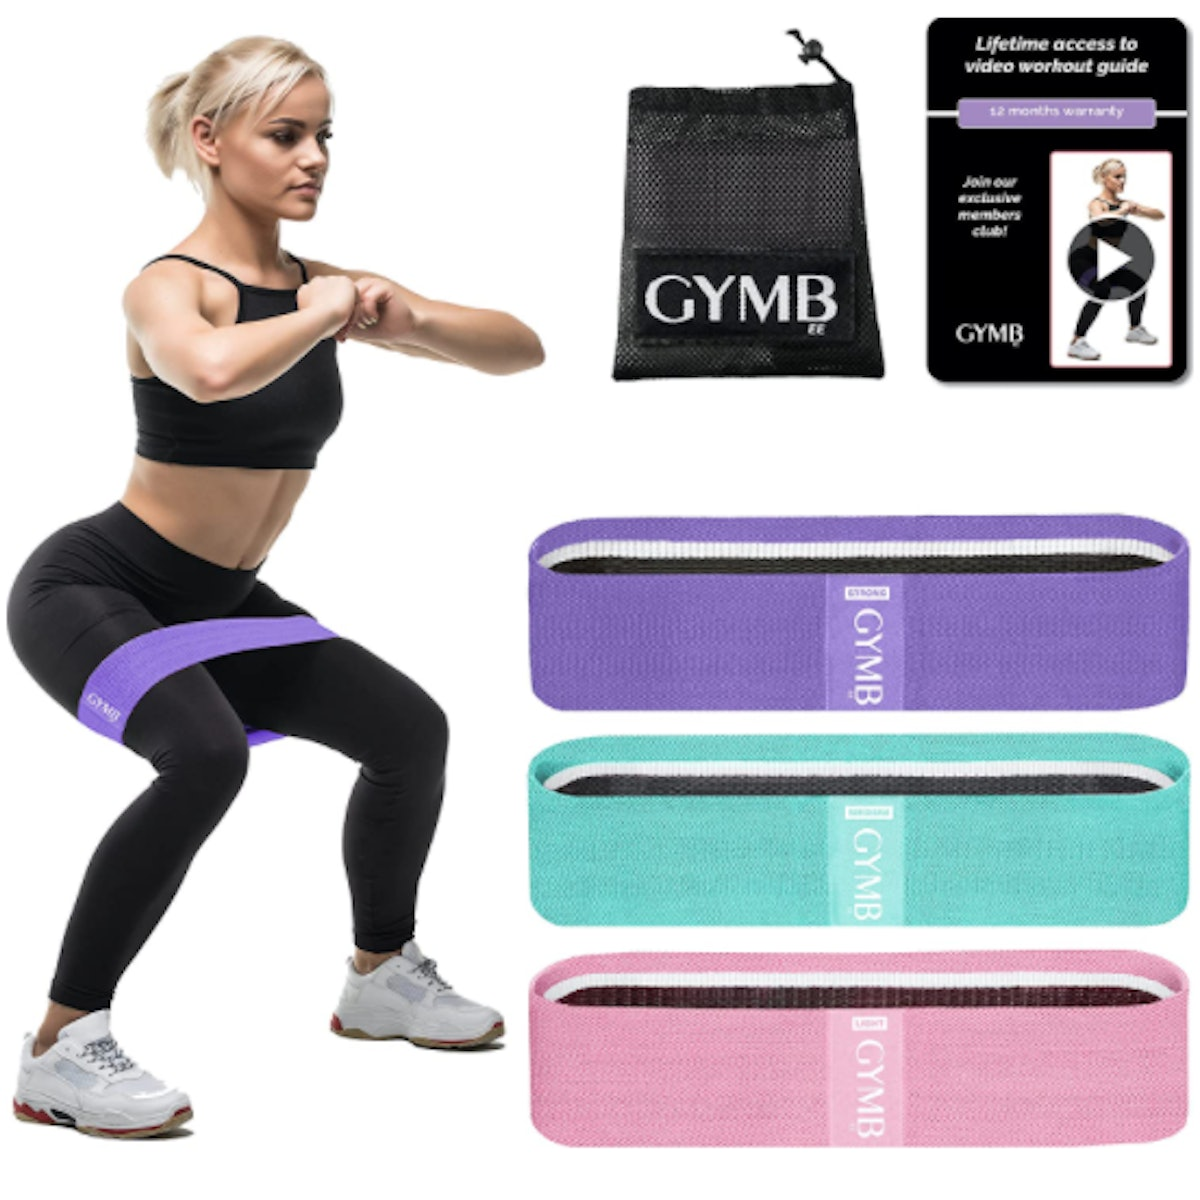 Gymbee Fabric Resistance Bands (3-Pack)